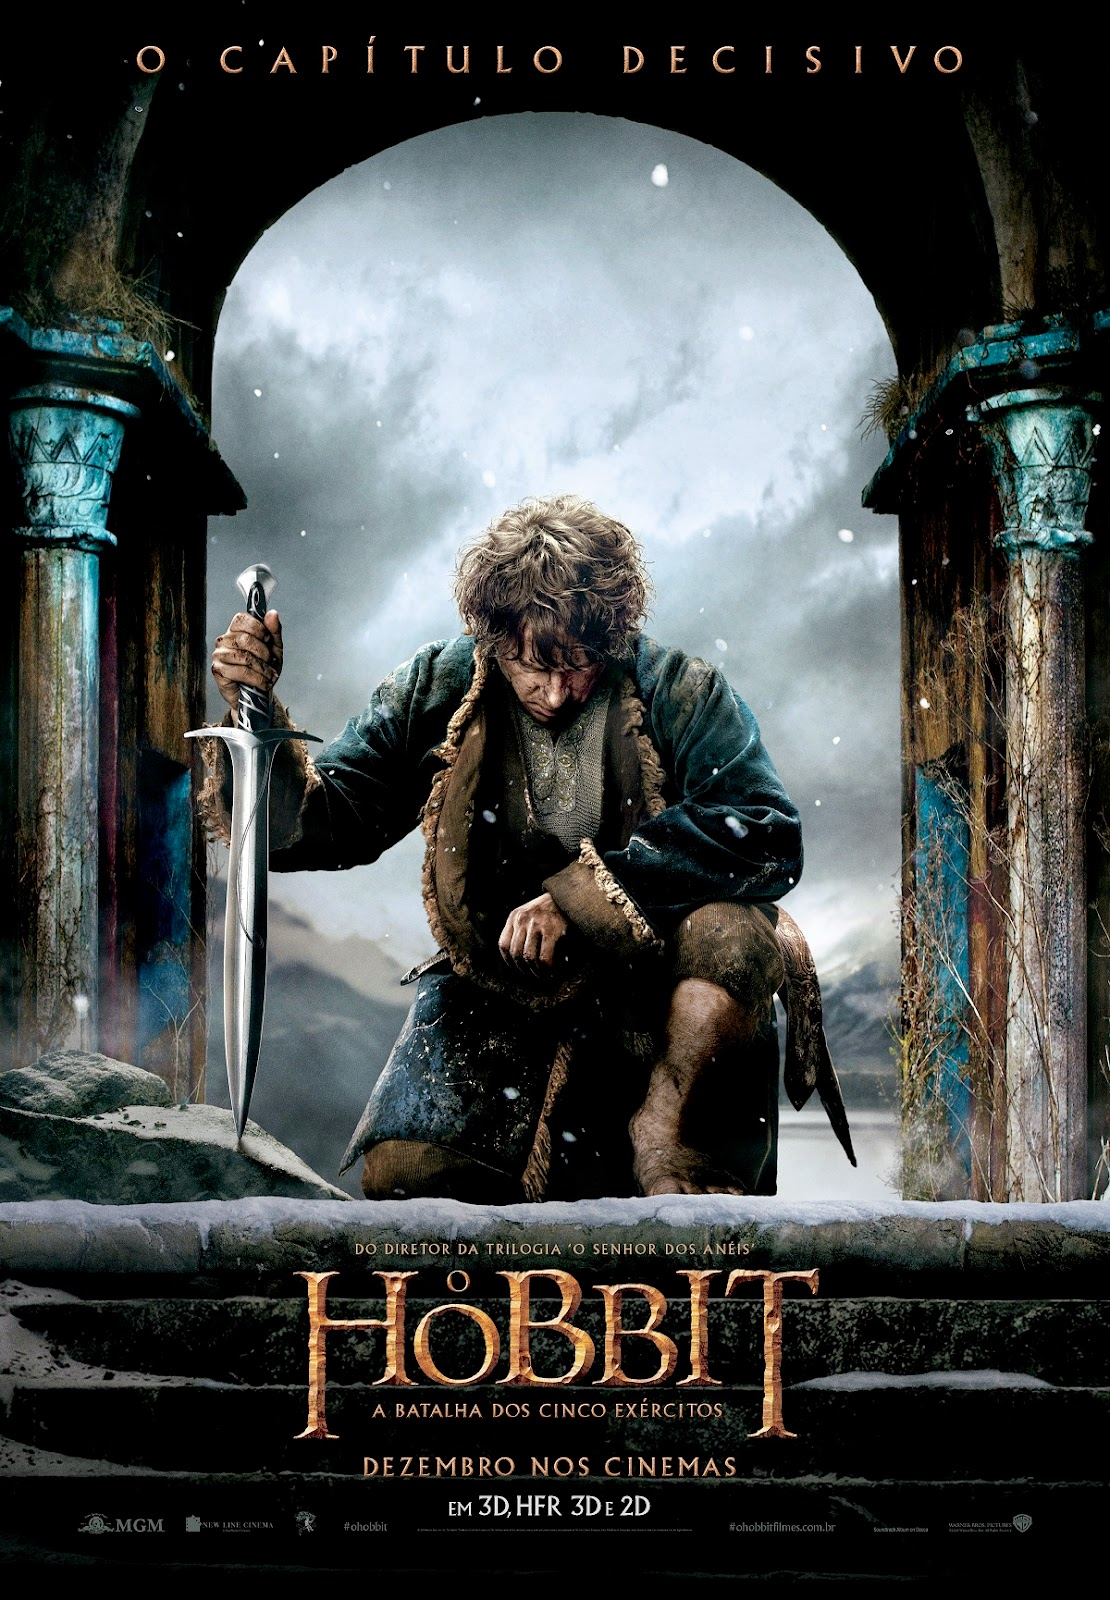 Pôster/capa/cartaz nacional de O HOBBIT: A BATALHA DOS CINCO EXÉRCITOS (The Hobbit: The Battle of the Five Armies)